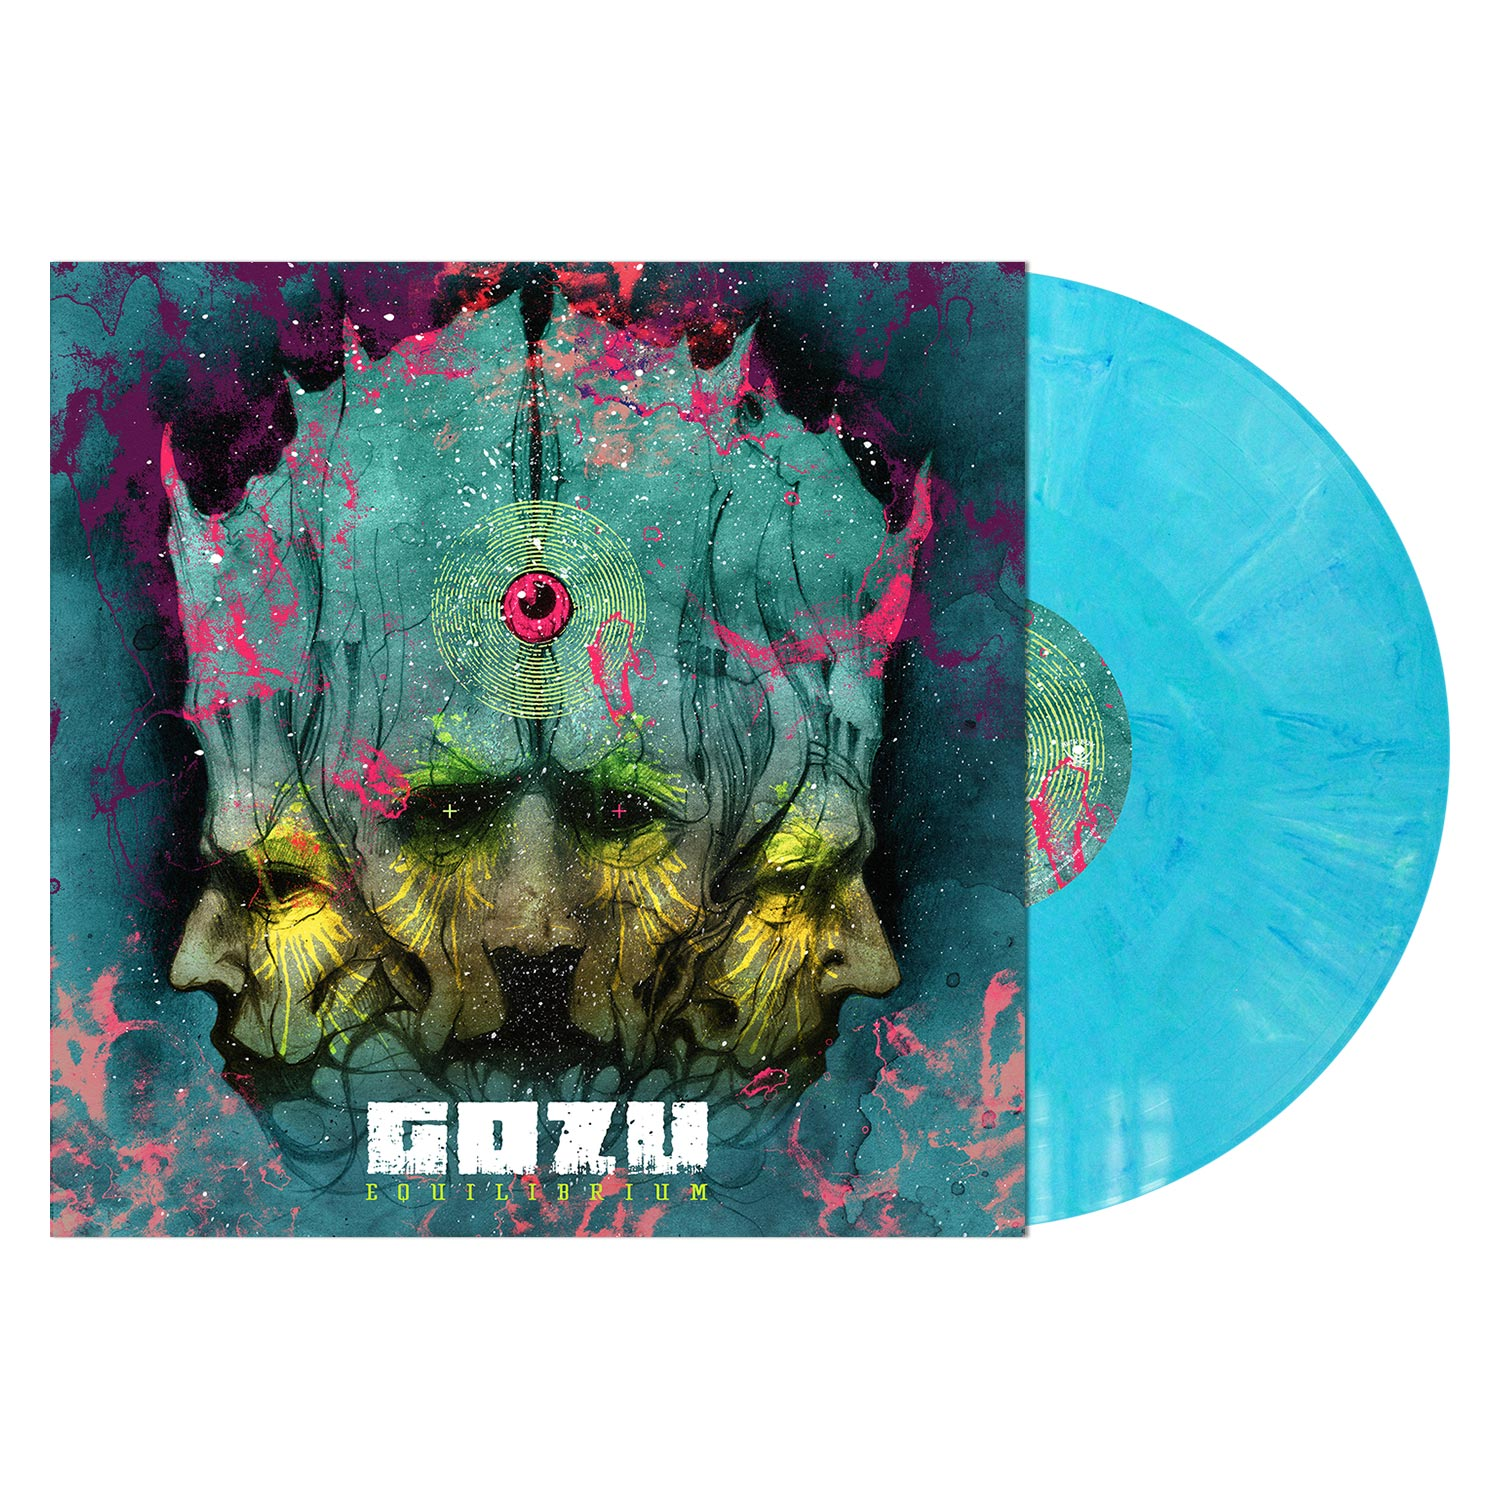 Equilibrium - Deluxe Bundle - Sky Blue